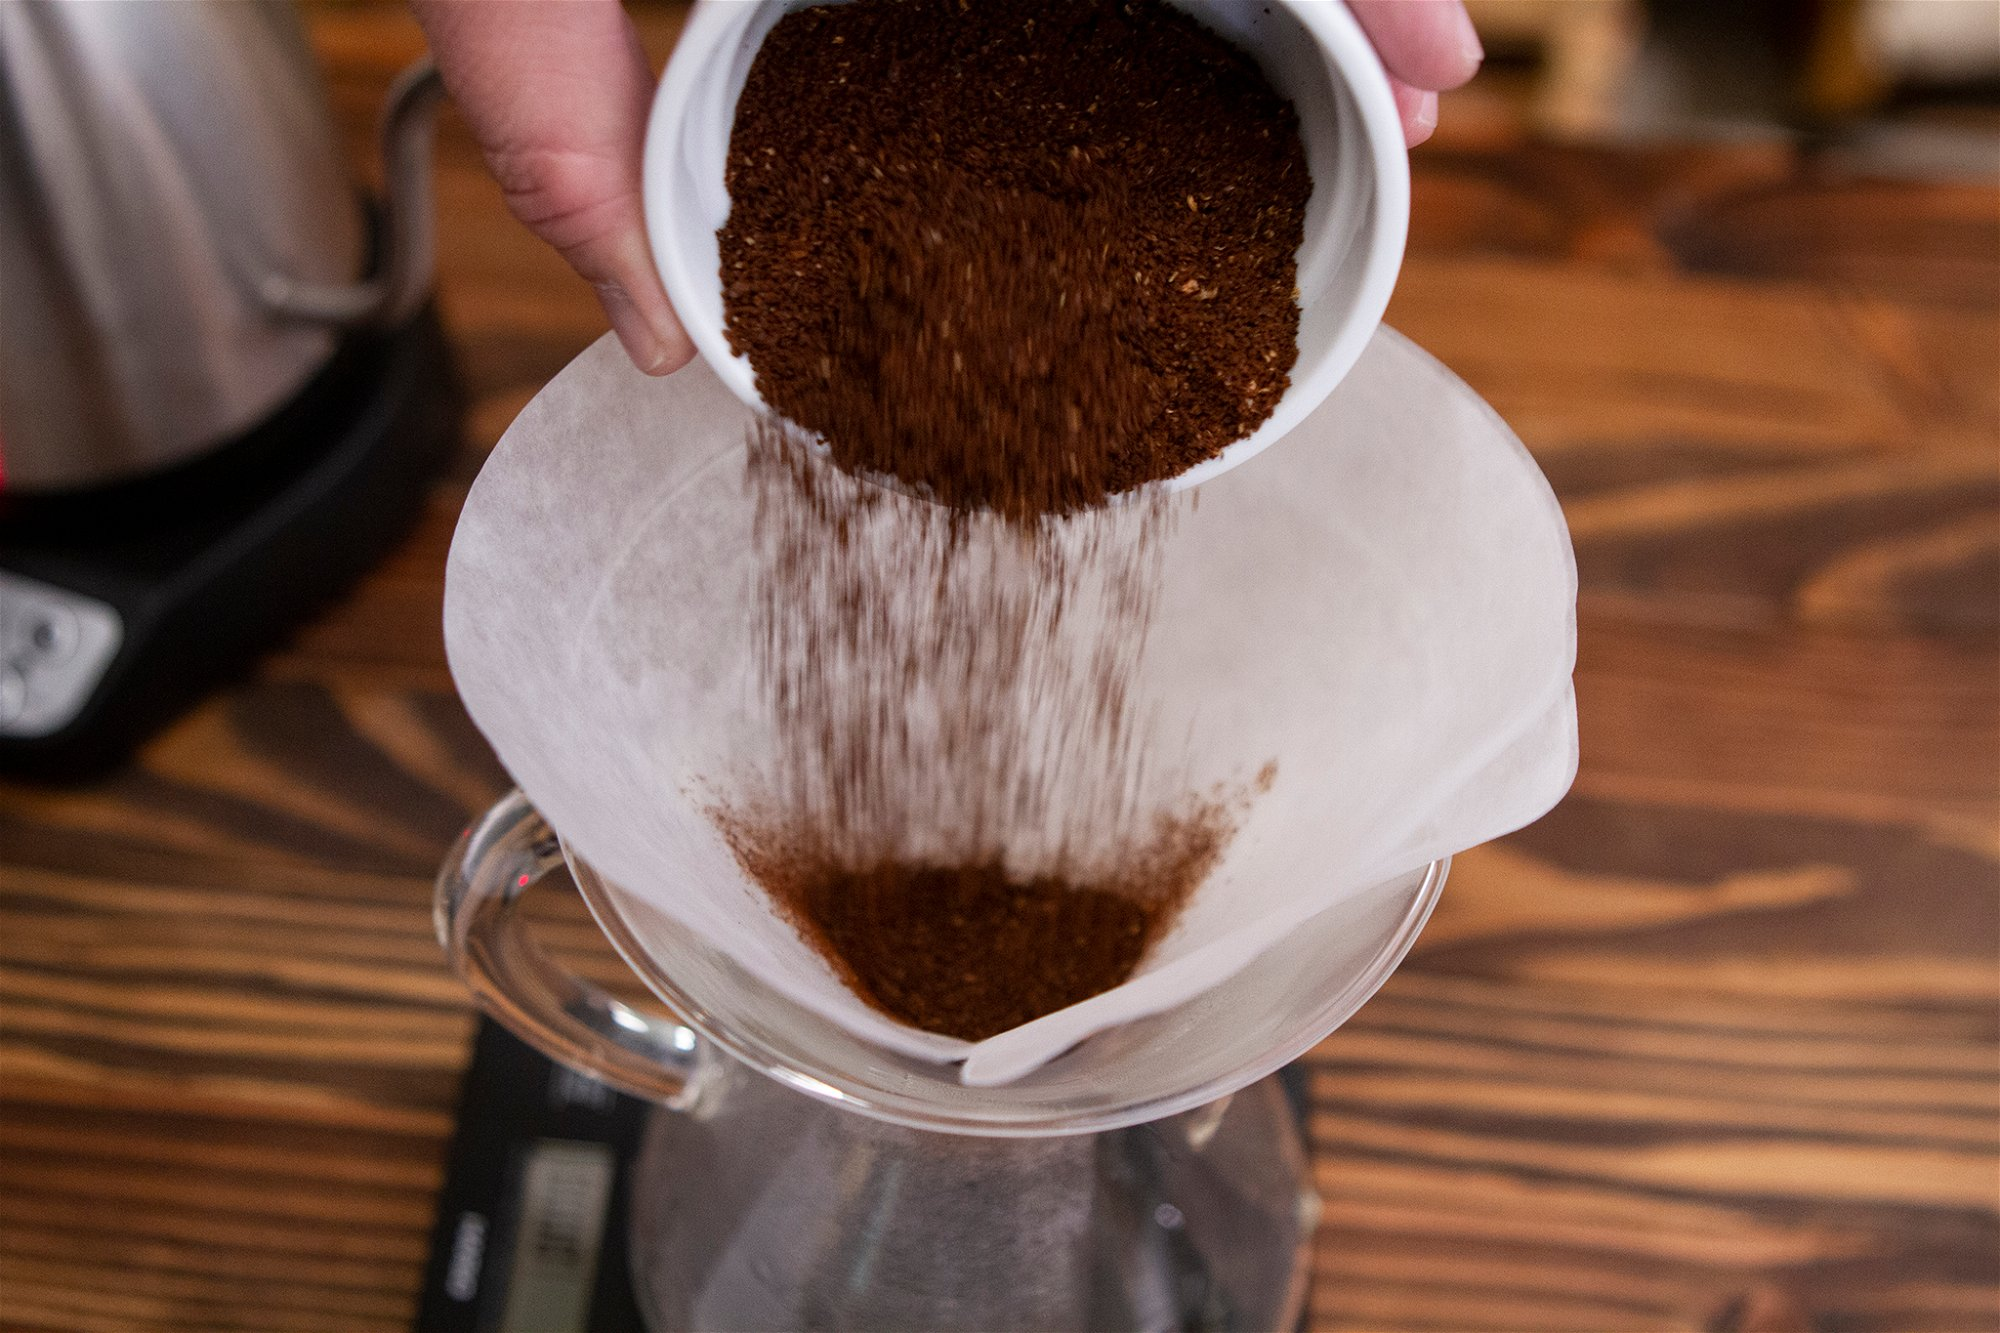 COFFEE GROUNDS POURING INTO CHEMEX